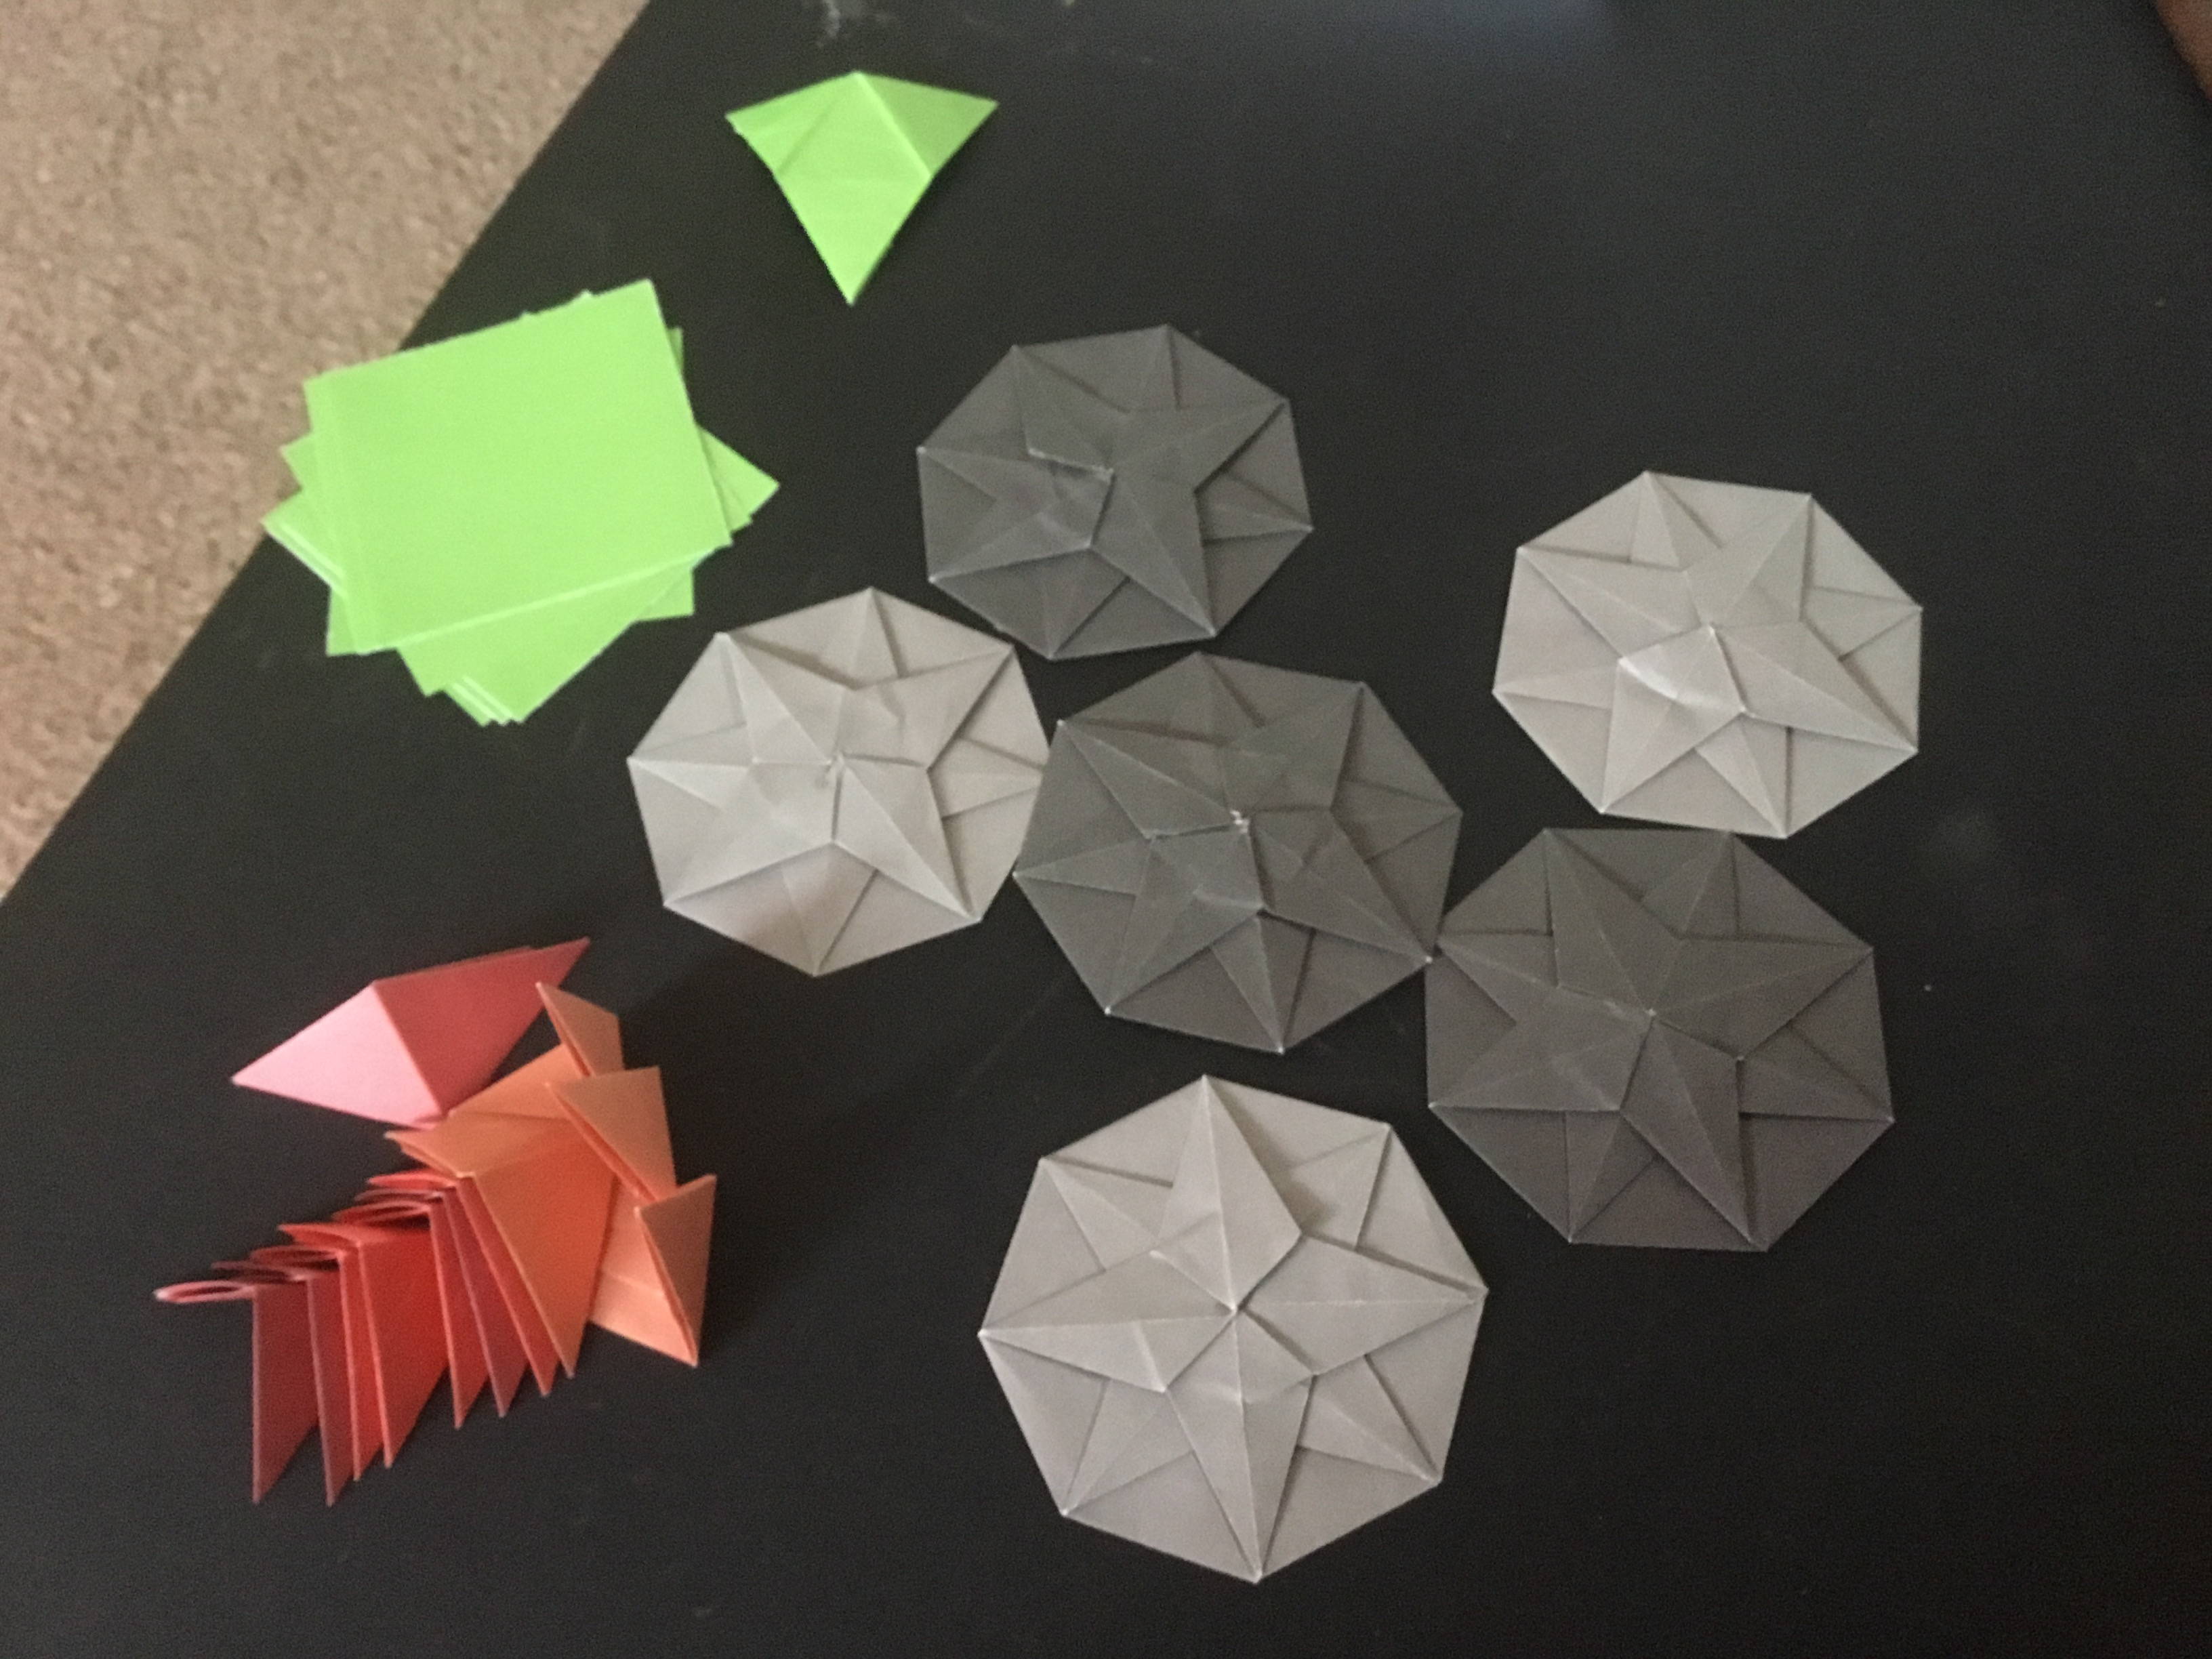 Paper Craft Project #18-Octagonal Star Gigi1565